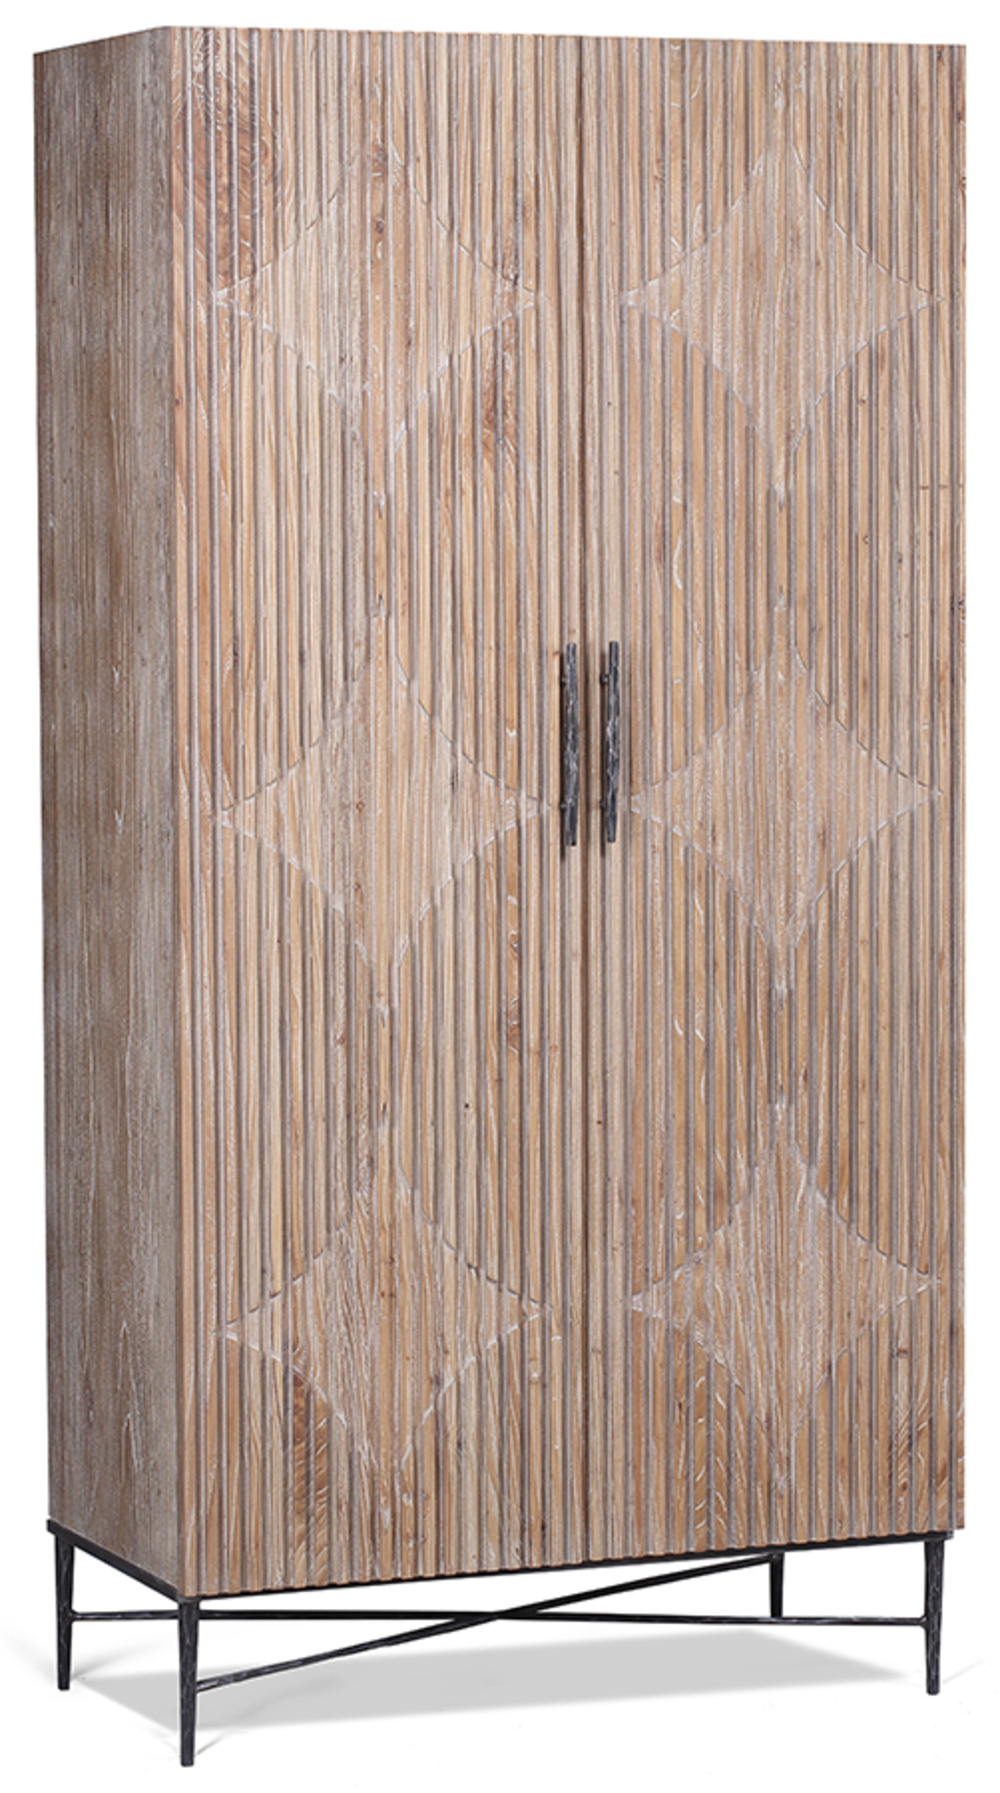 Dovetail Furniture - Zell Cabinet